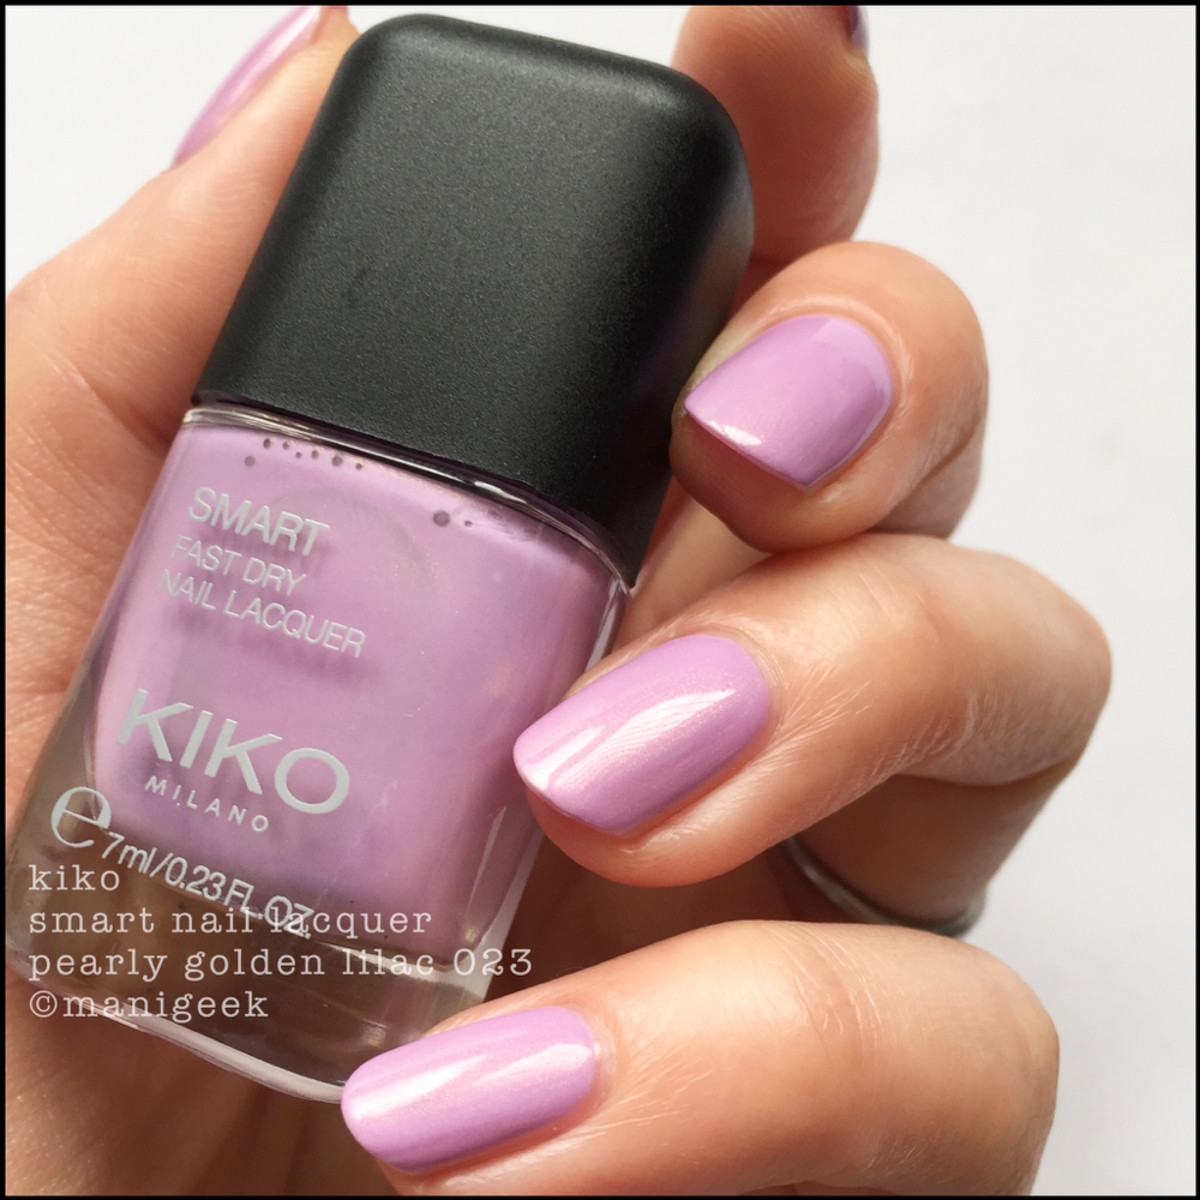 Kiko Smart Nail Lacquer Pearly Golden Lilac 023 _ 1000 Days of Untried Nail Polish Week 4